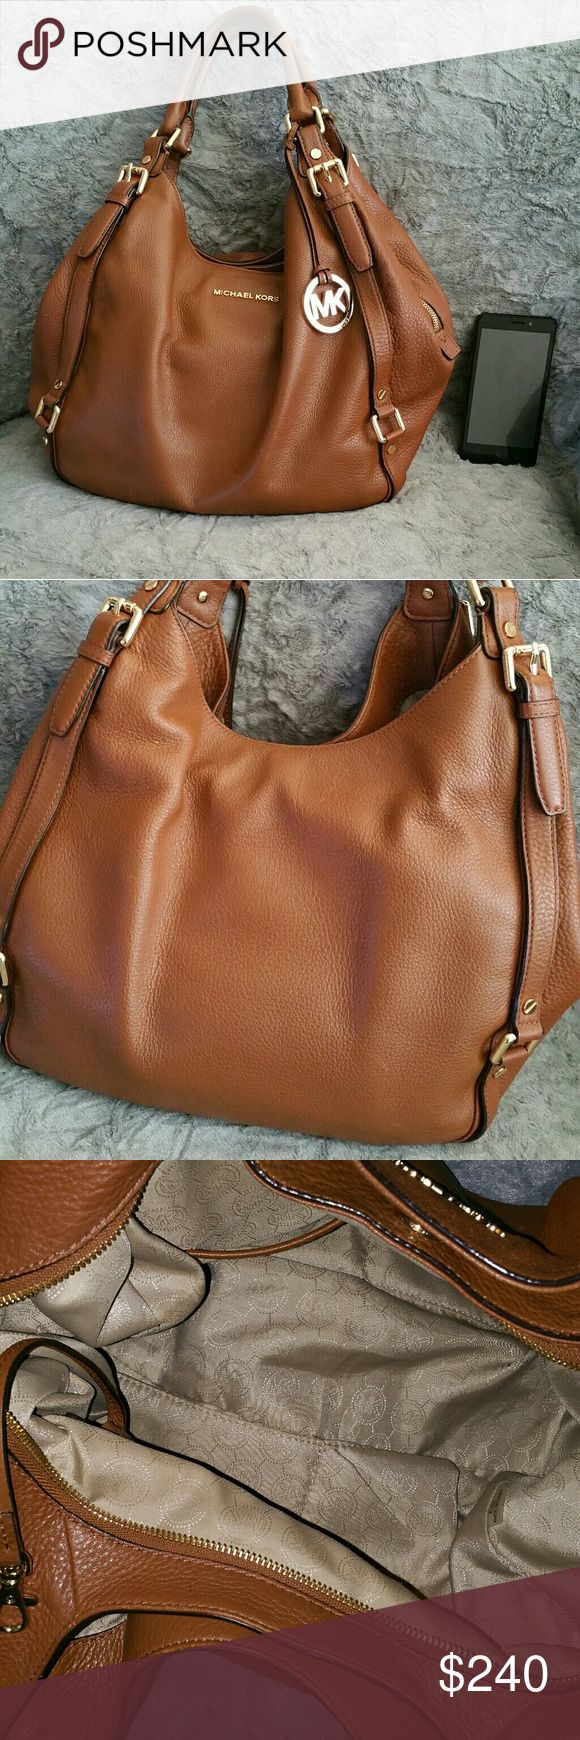 Michael Kors Large Bedford Bag Saddle bag brown leather, awesome condition, many pockets inside, all snaps work, some little ink pen marks inside, zipper works perfectly, some light wear but it's beautiful.  I don't have a bag or a box but it is 100% authentic. And just so you fellow poshers know,  I actually bought a $400 Gucci purse thru here thinking it was real and it was not!  I told Posh about it and they  cleared it up and I sent that thing back! So this girl only buys the real deal…